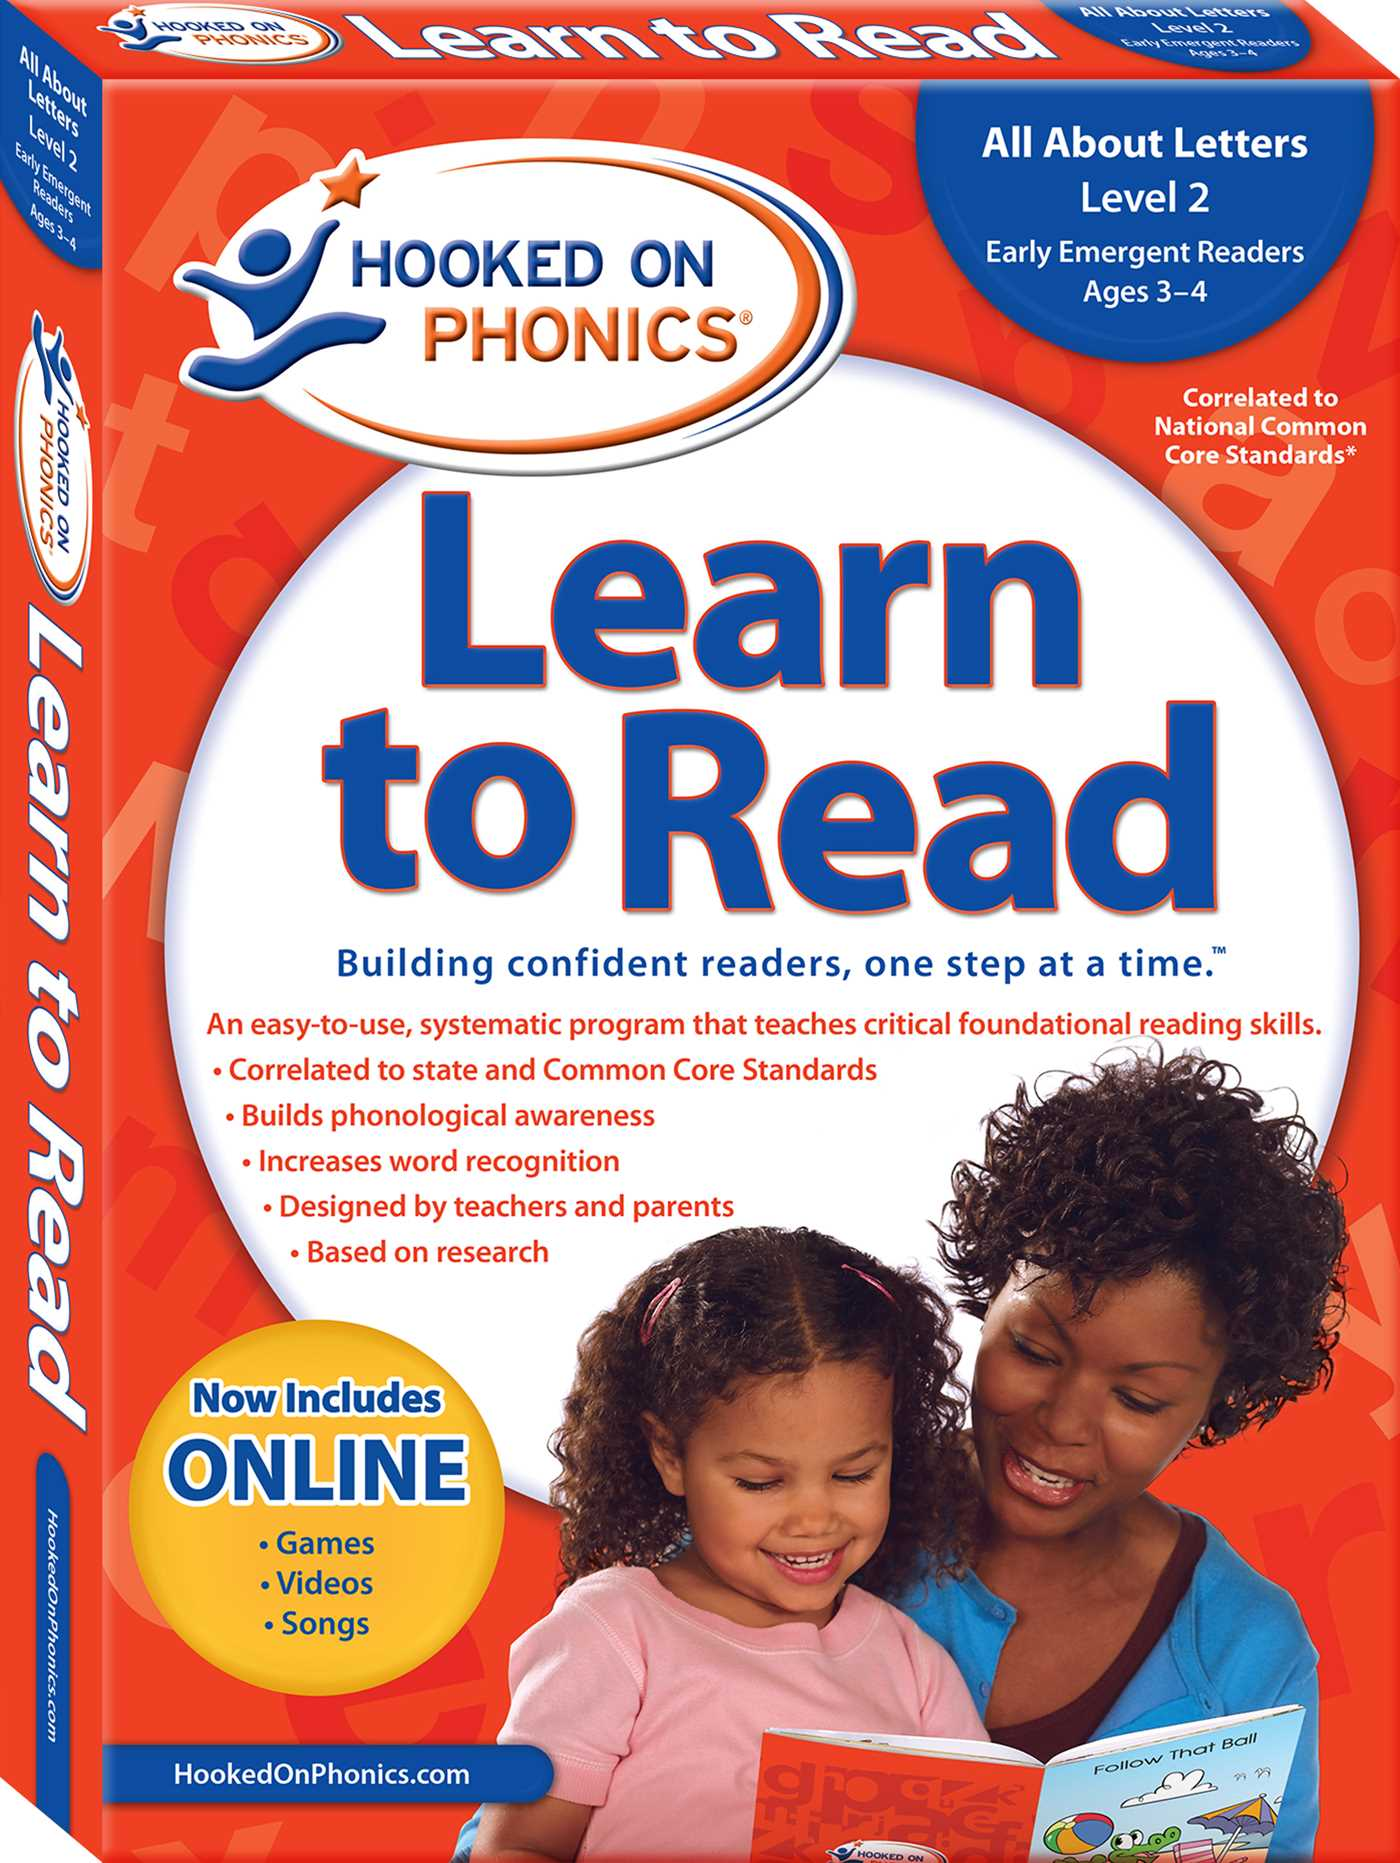 hooked-on-phonics-learn-to-read-level-2-